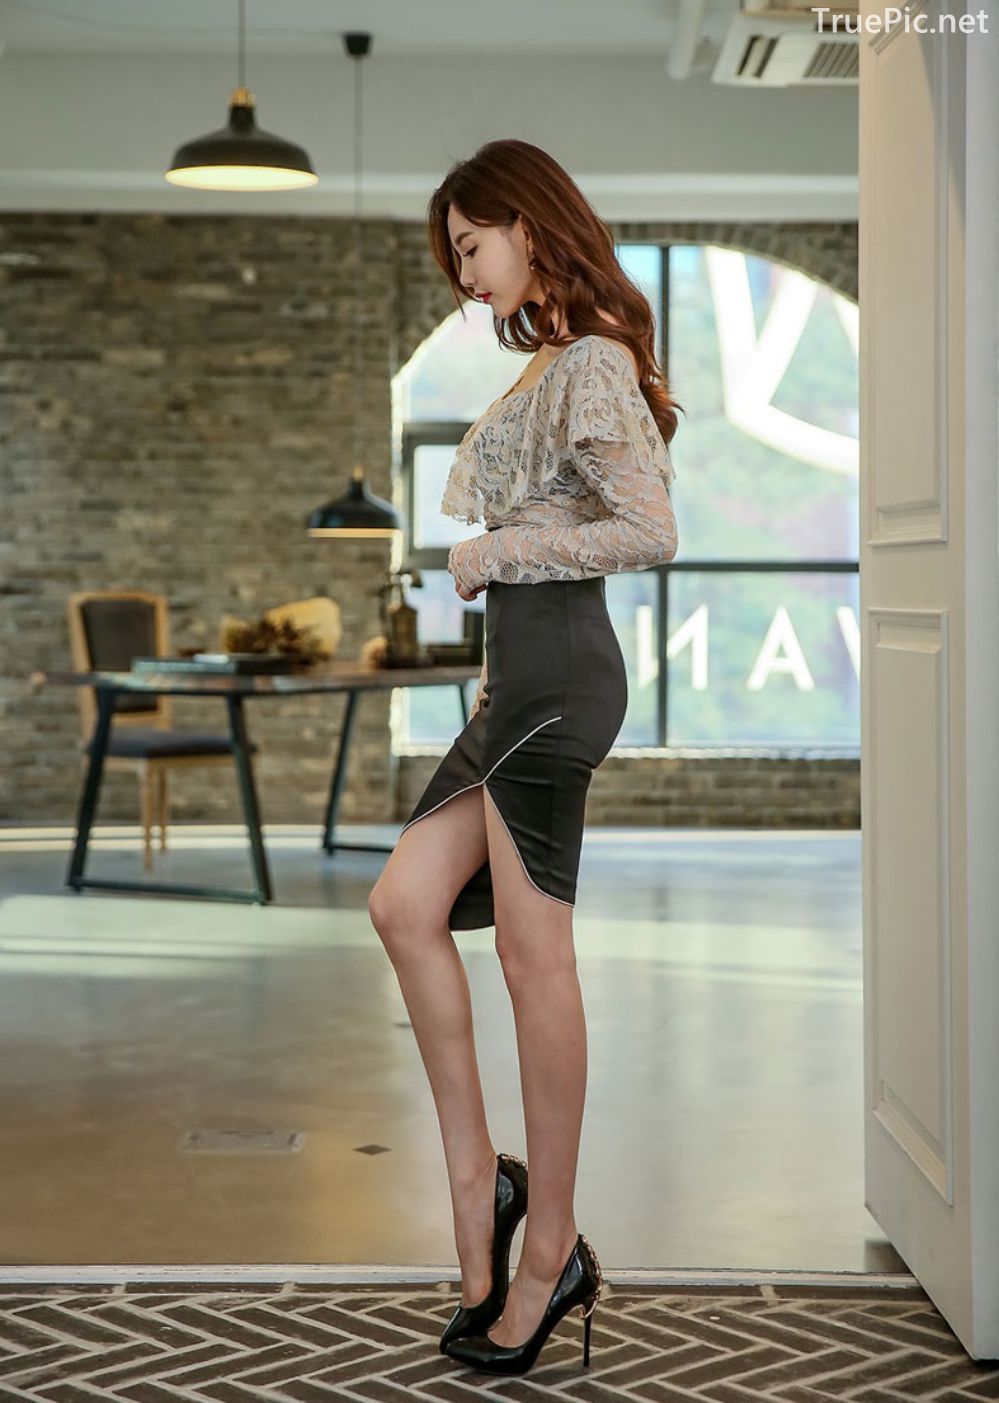 Korean Fashion Model - Hyemi - Indoor Photoshoot Collection - TruePic.net - Picture 8